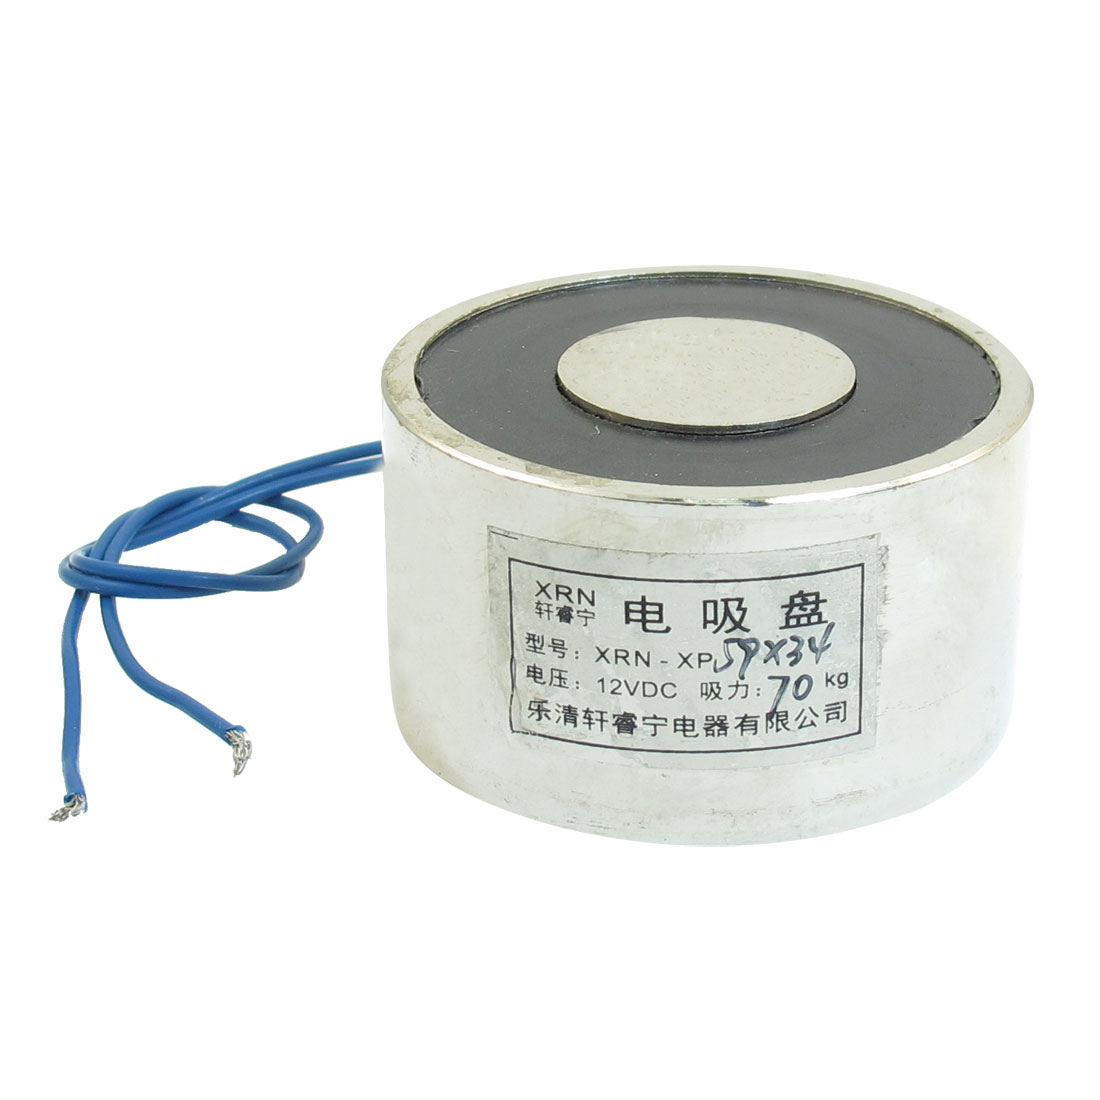 Uxcell Sucked Type Electric Lifting Holding Magnet Electromagnet 12VDC 70Kg 154LB 59mm X 34mm